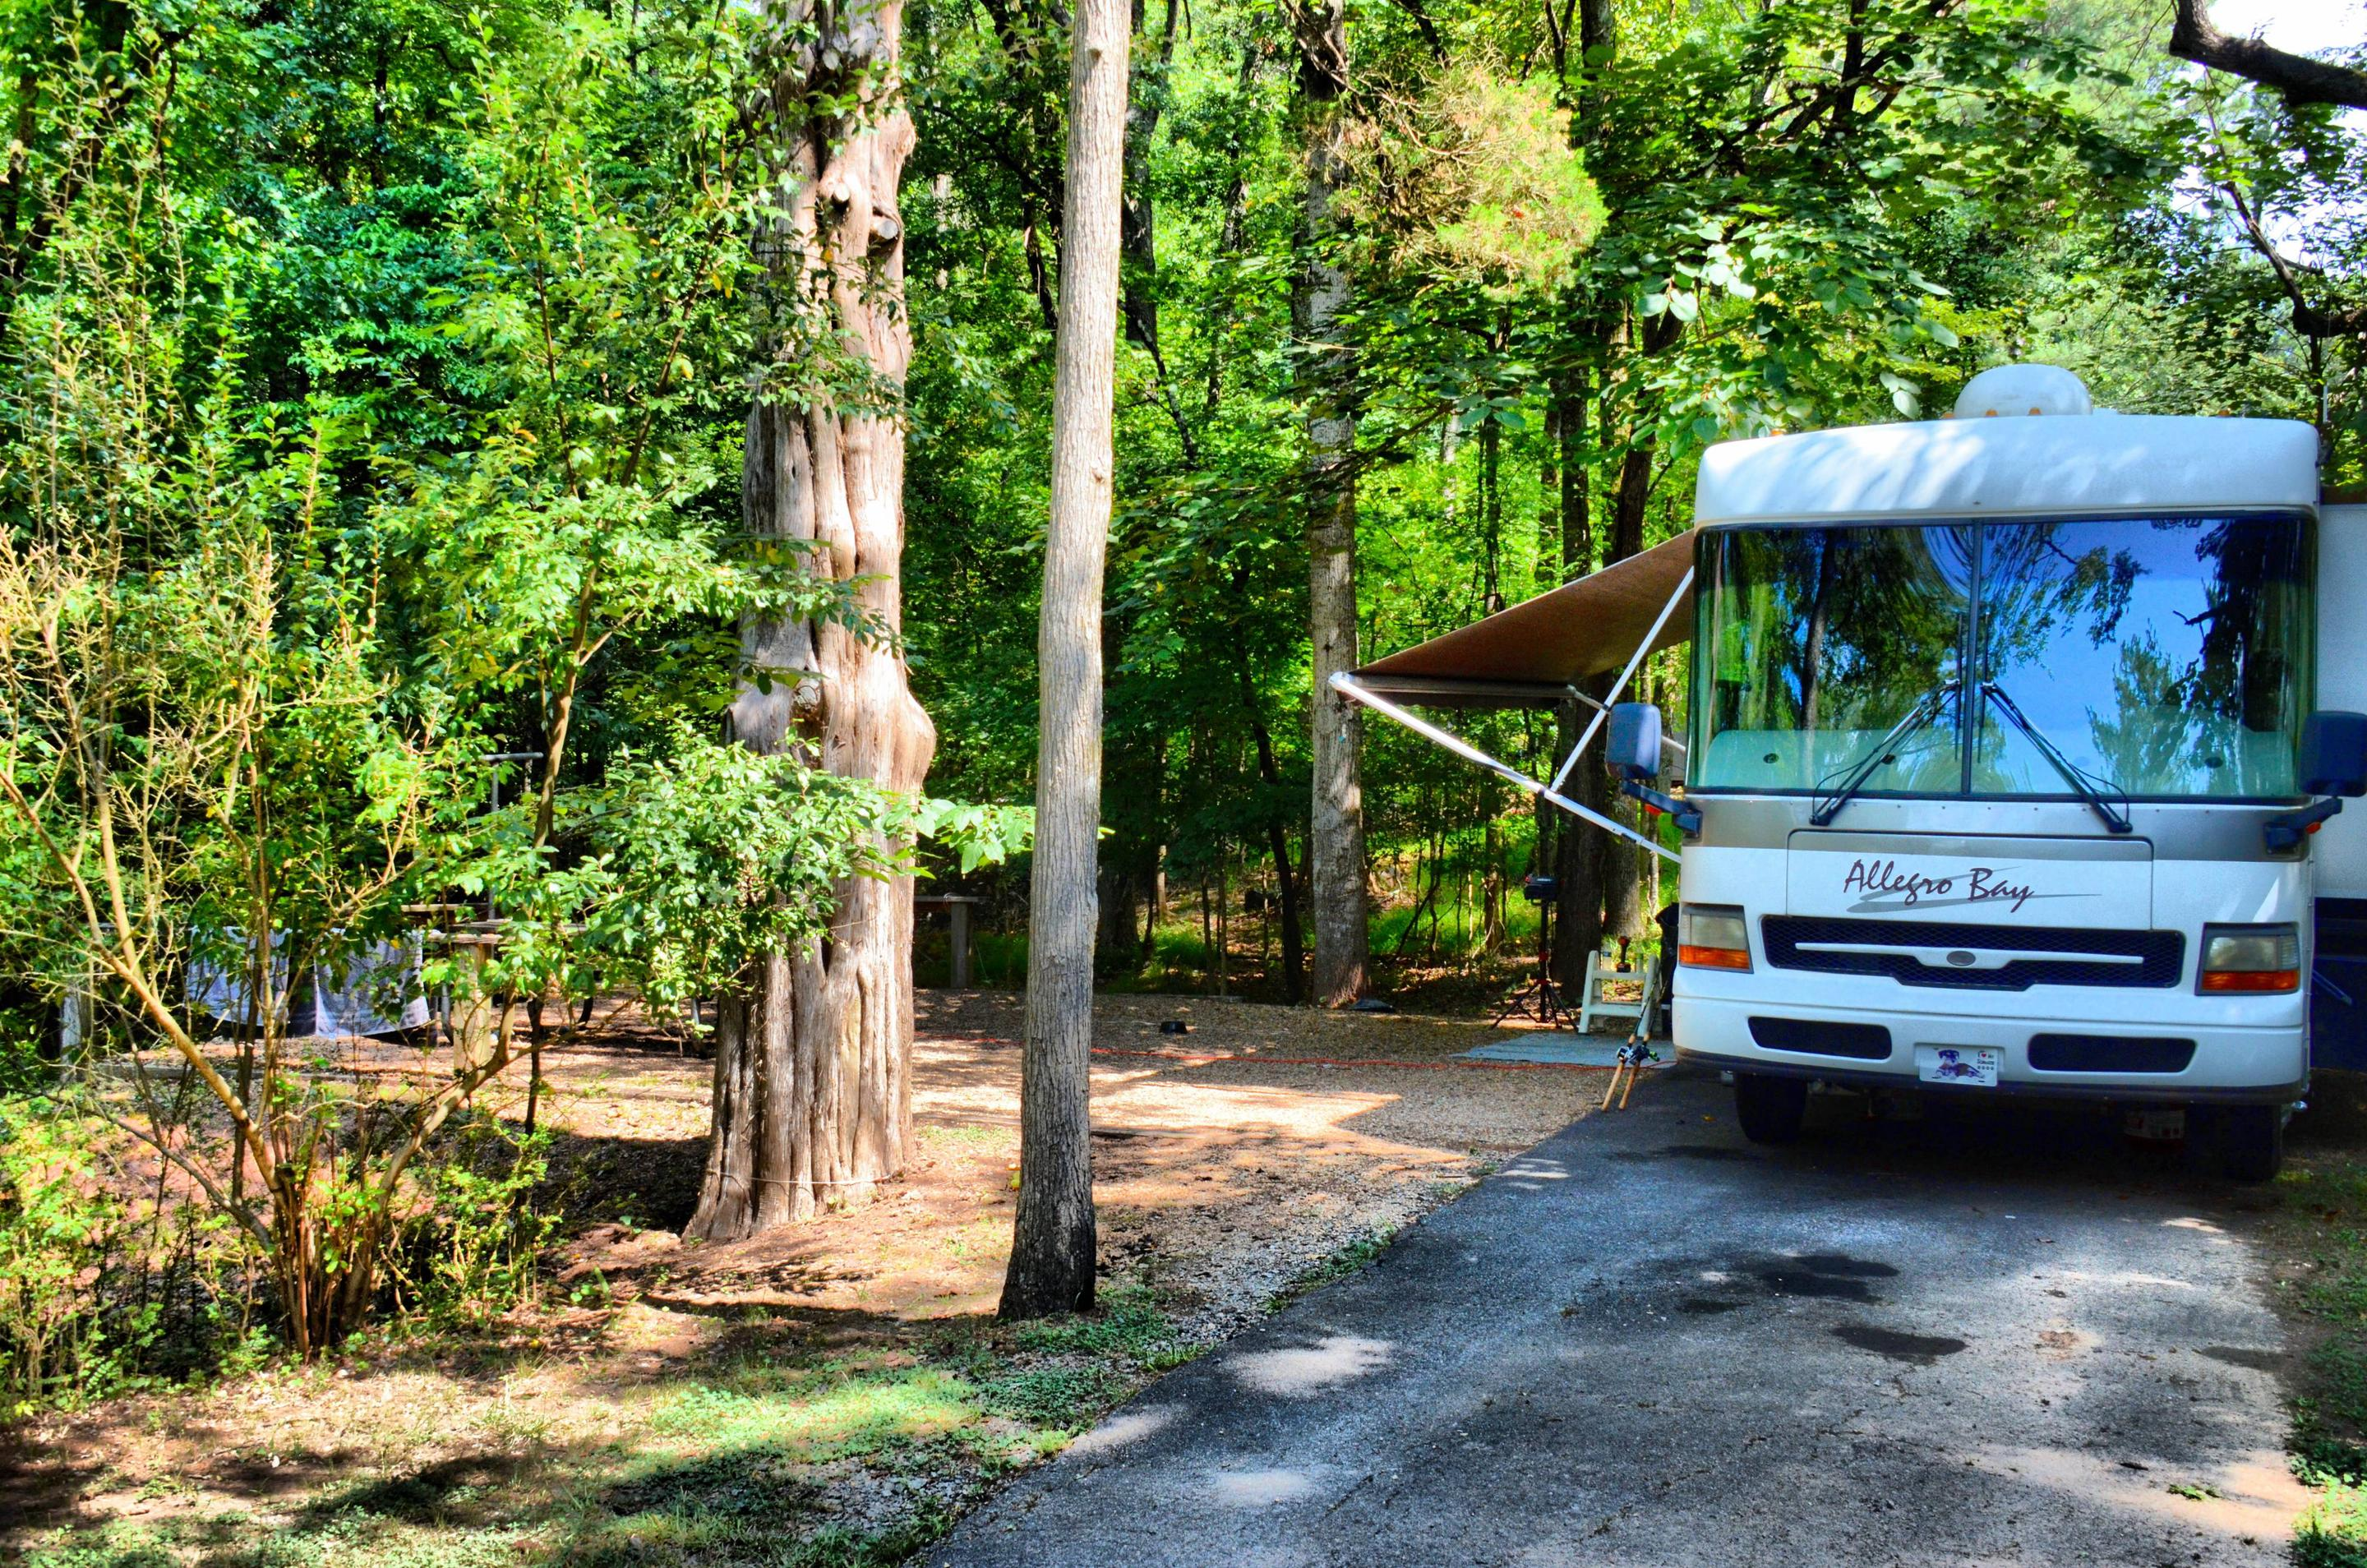 Awning-side clearance.McKinney Campground, campsite 105.